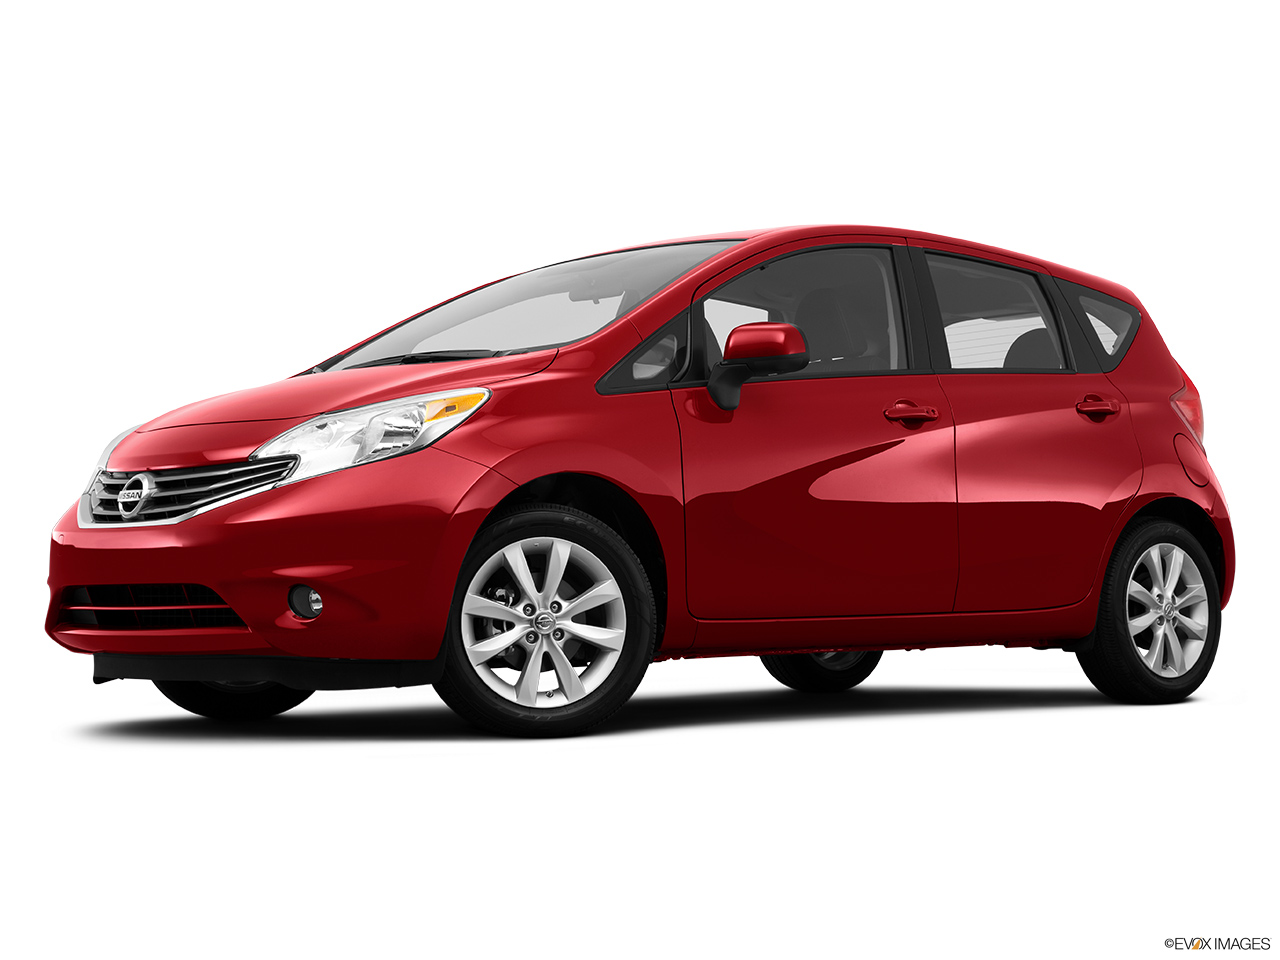 New 2014 nissan pathfinder invoice price nissan html for Nissan rogue sv invoice price